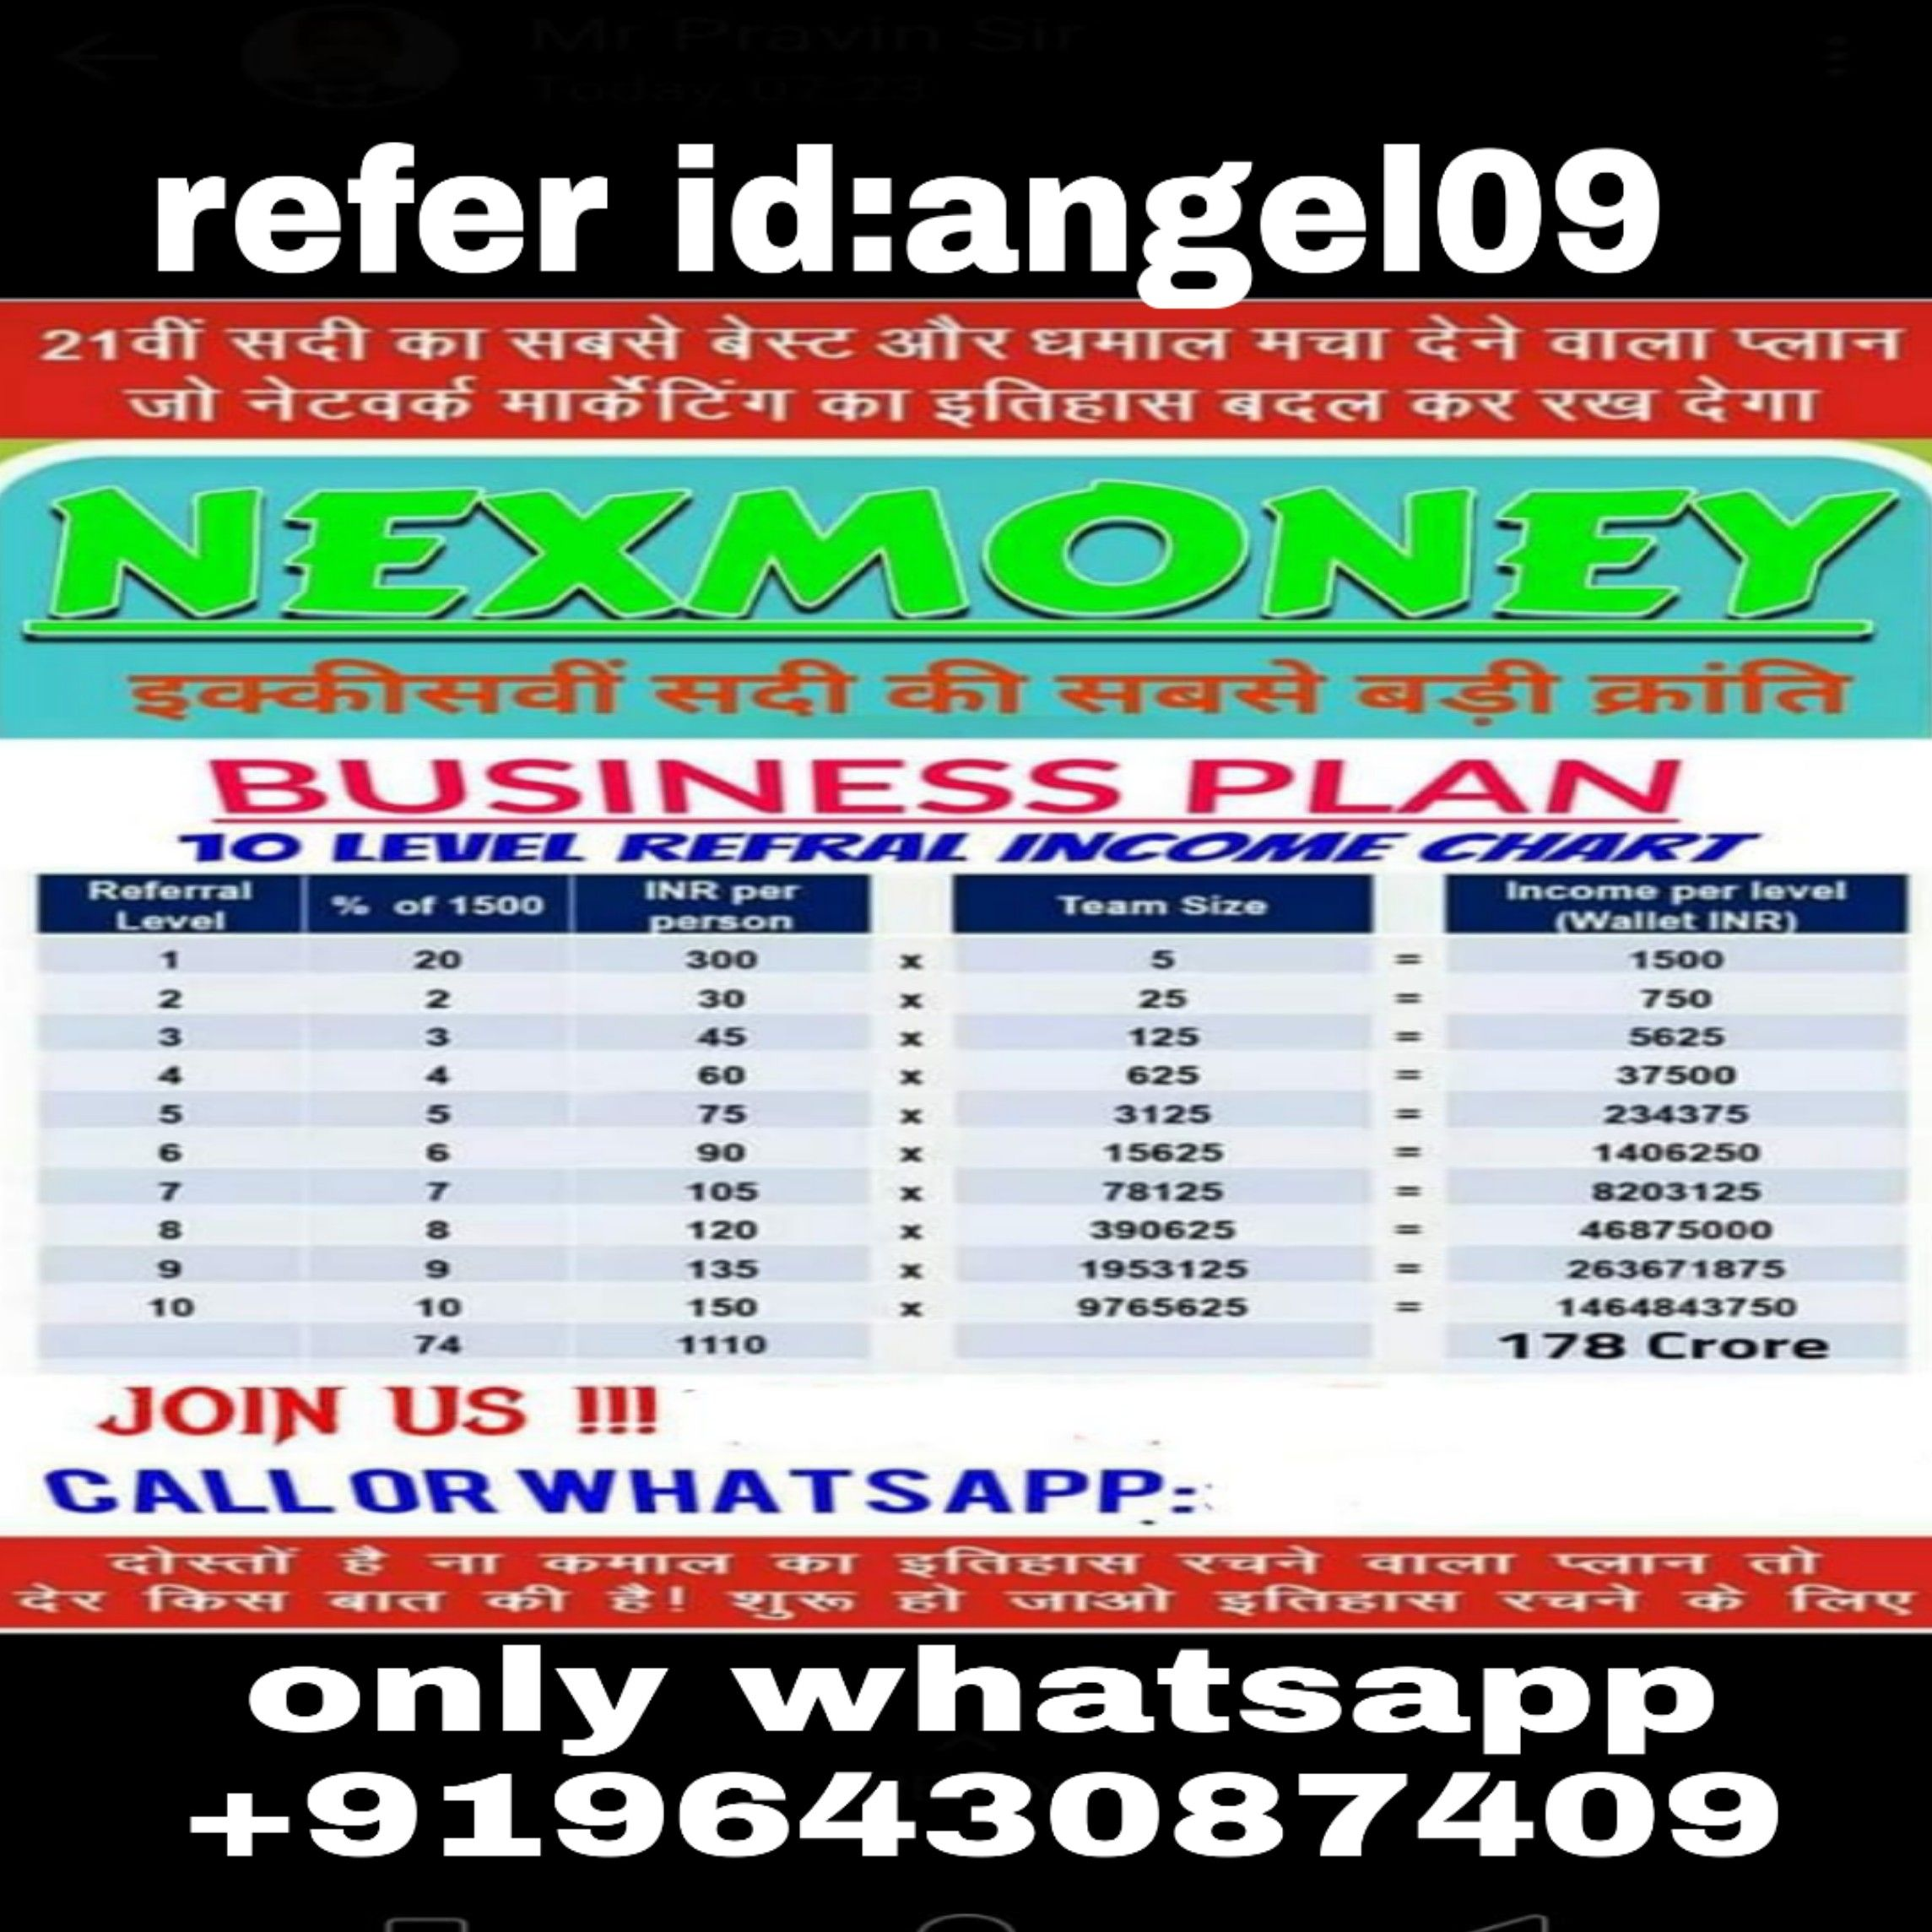 The Easiest N Simplest Way To Earn Good Money Utility Services How To Plan Business Planning